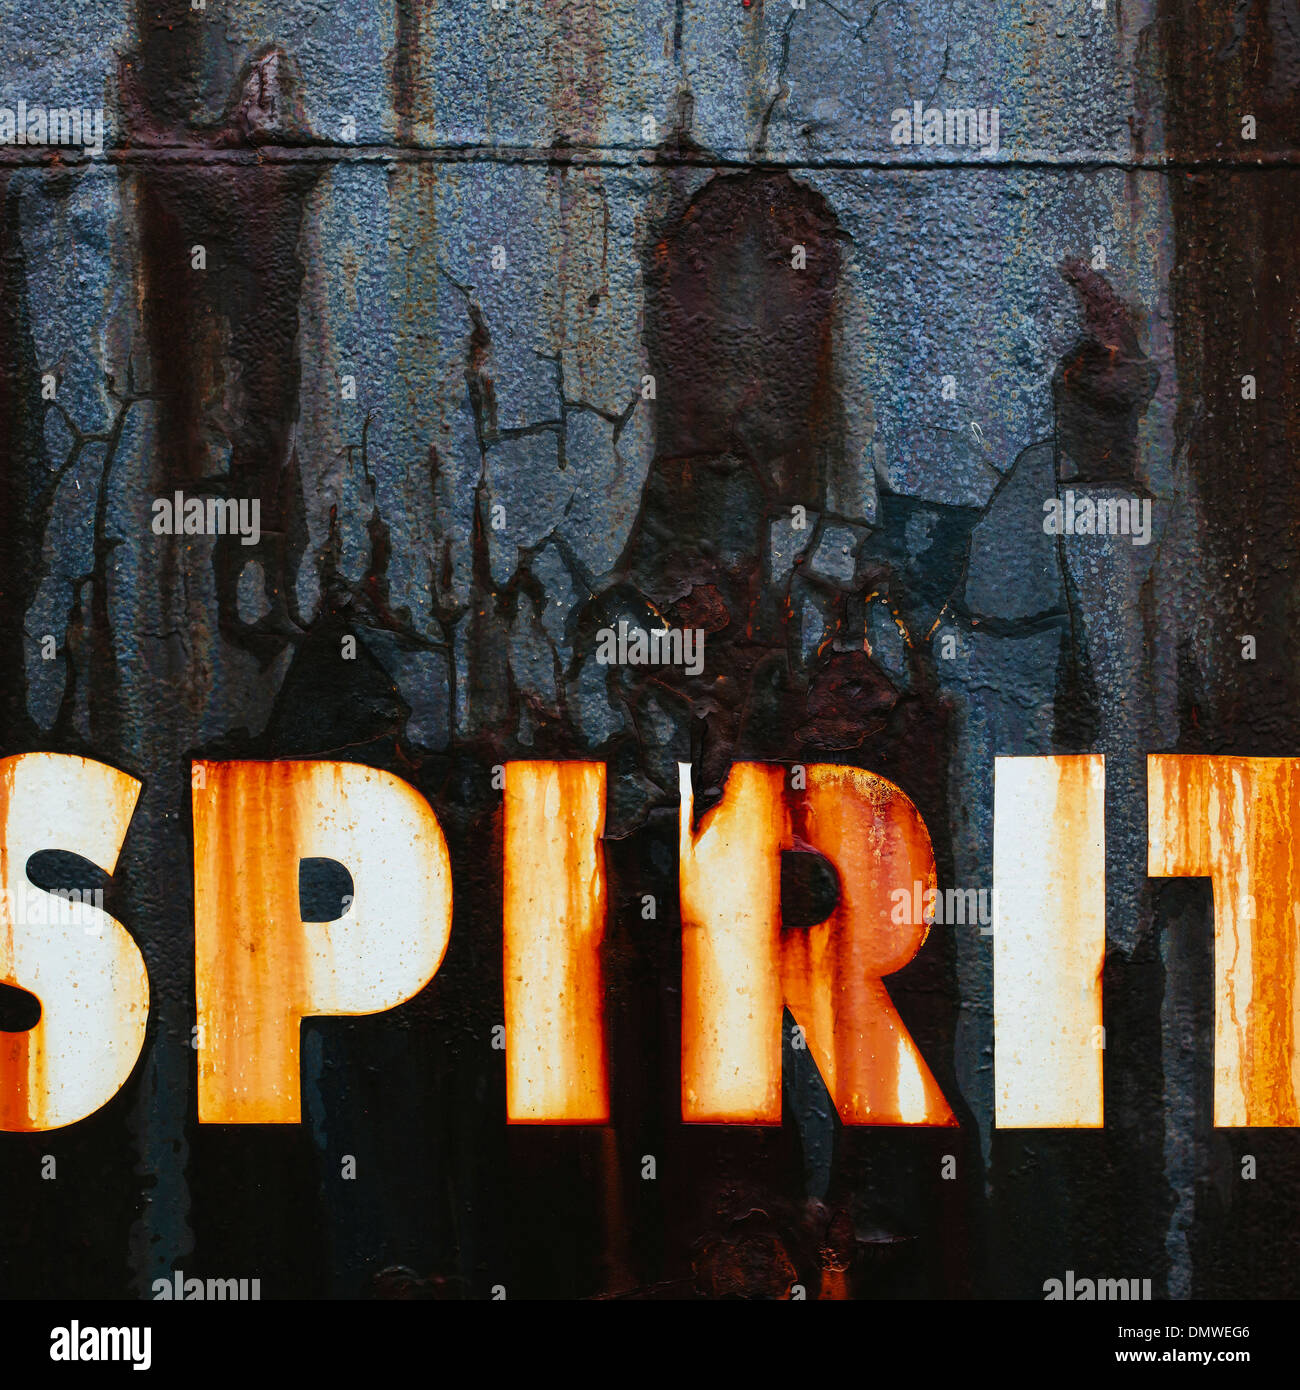 Close up of an old rusty commercial fishing boat.  word Spirit painted on  hull. - Stock Image